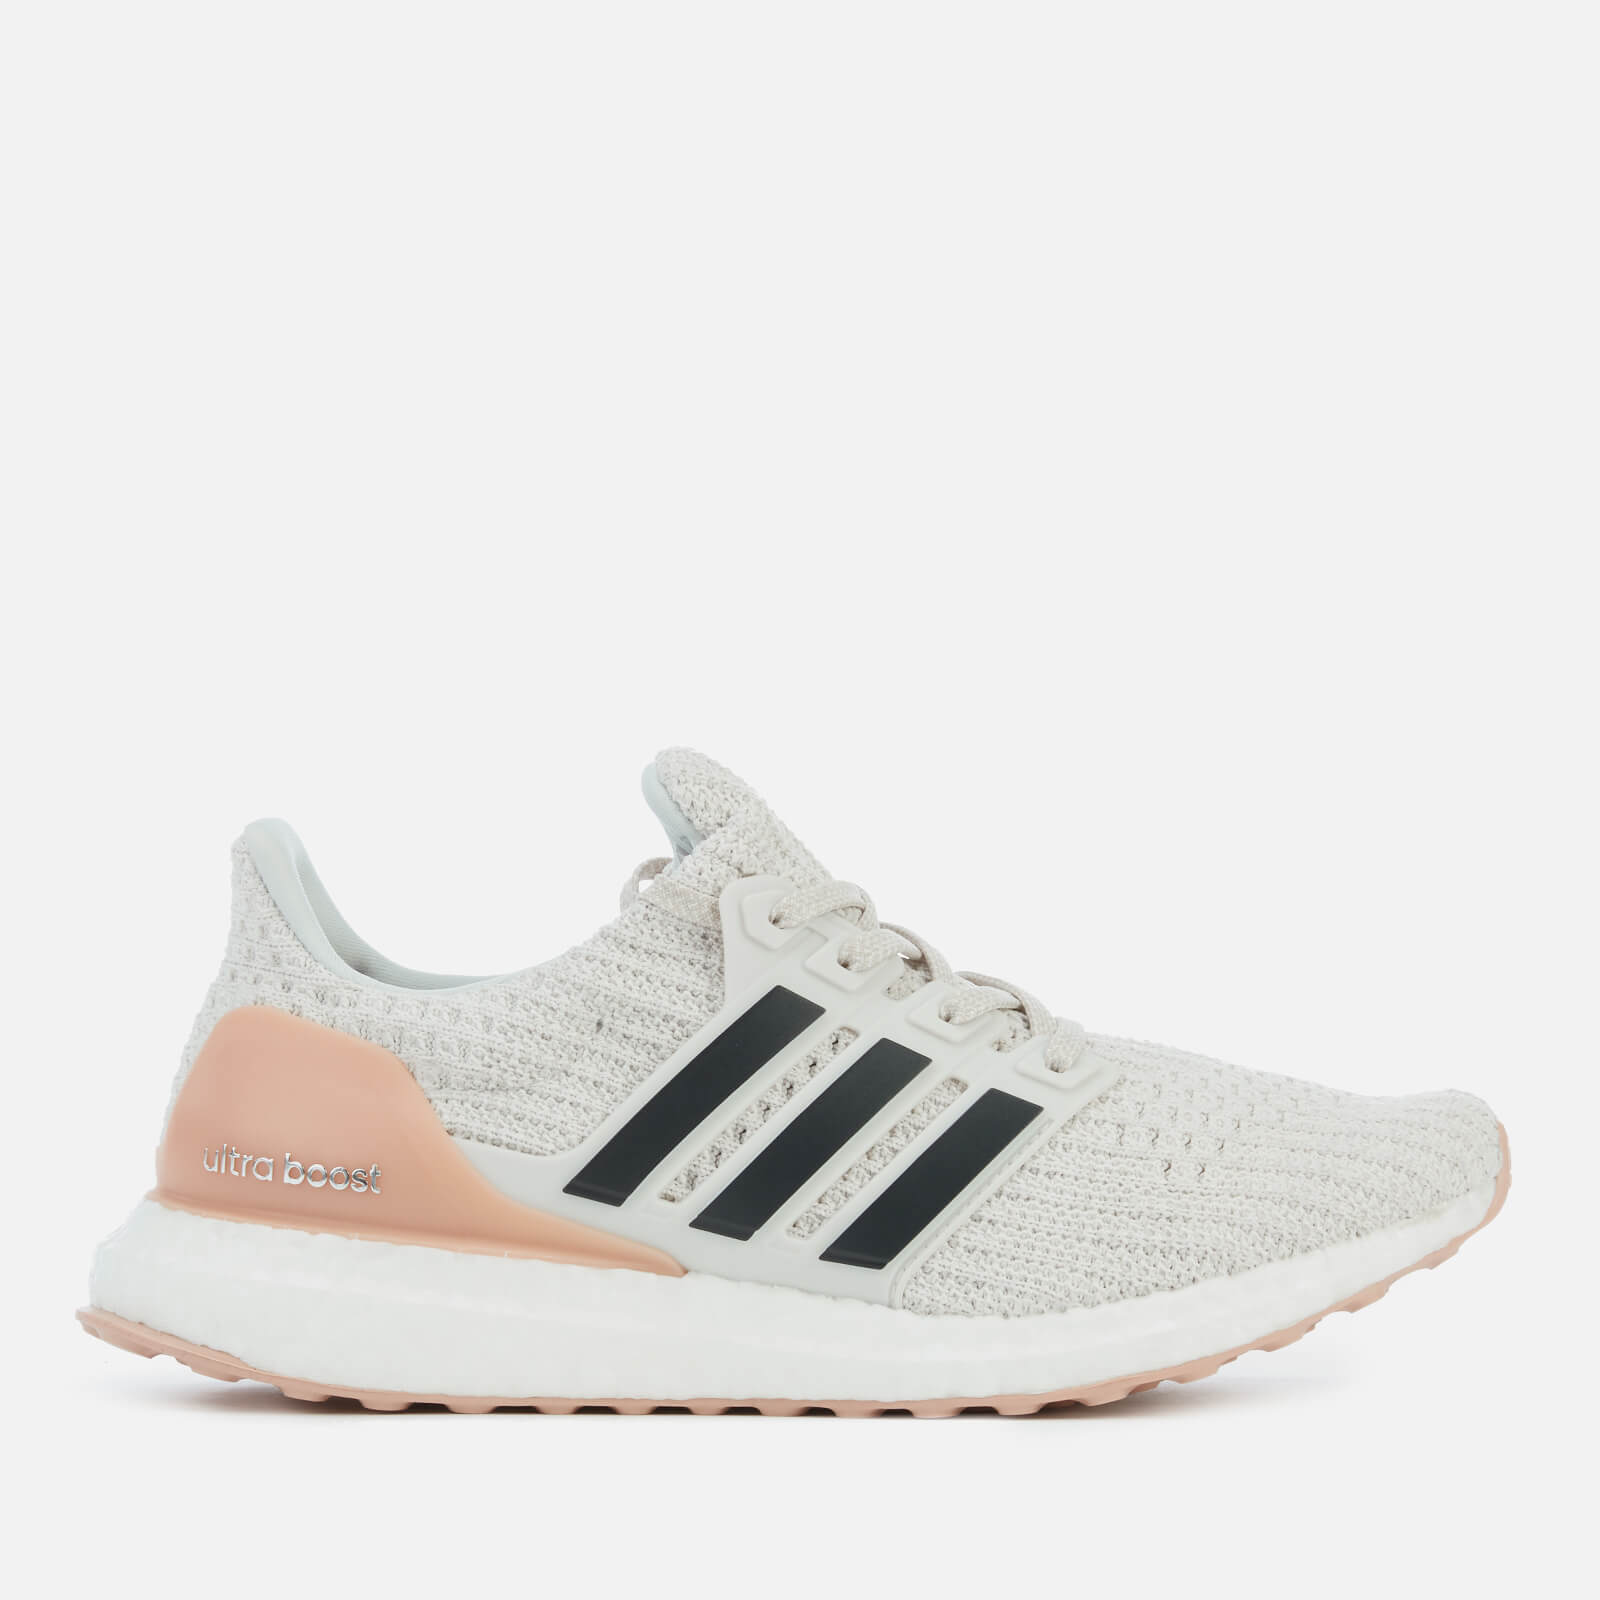 ff3ac630dcaf9 adidas Women s Ultraboost Trainers - Cloud White Sports   Leisure ...